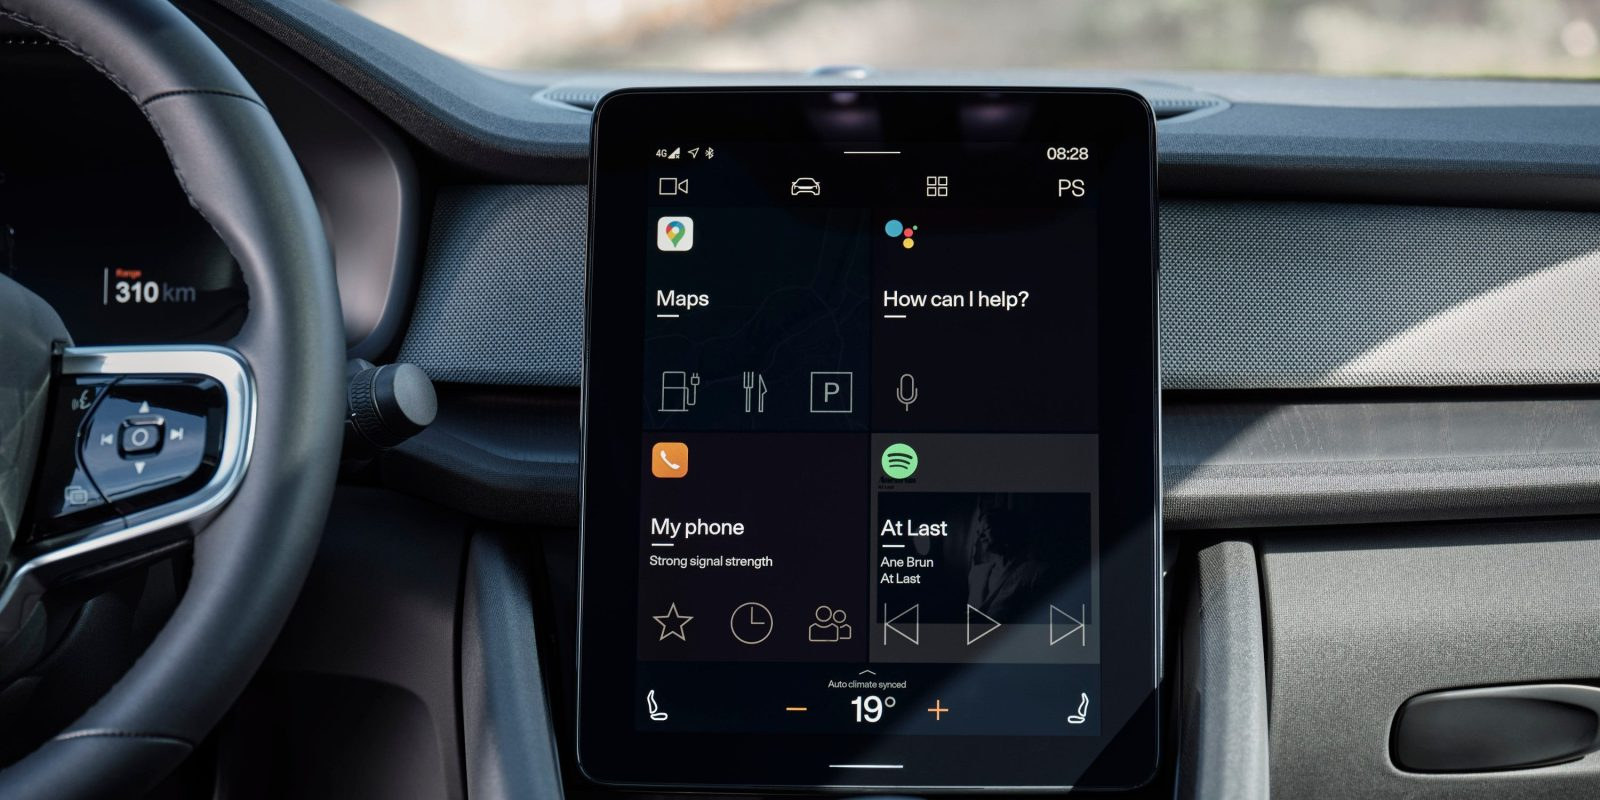 Android Automotive - 9to5Google